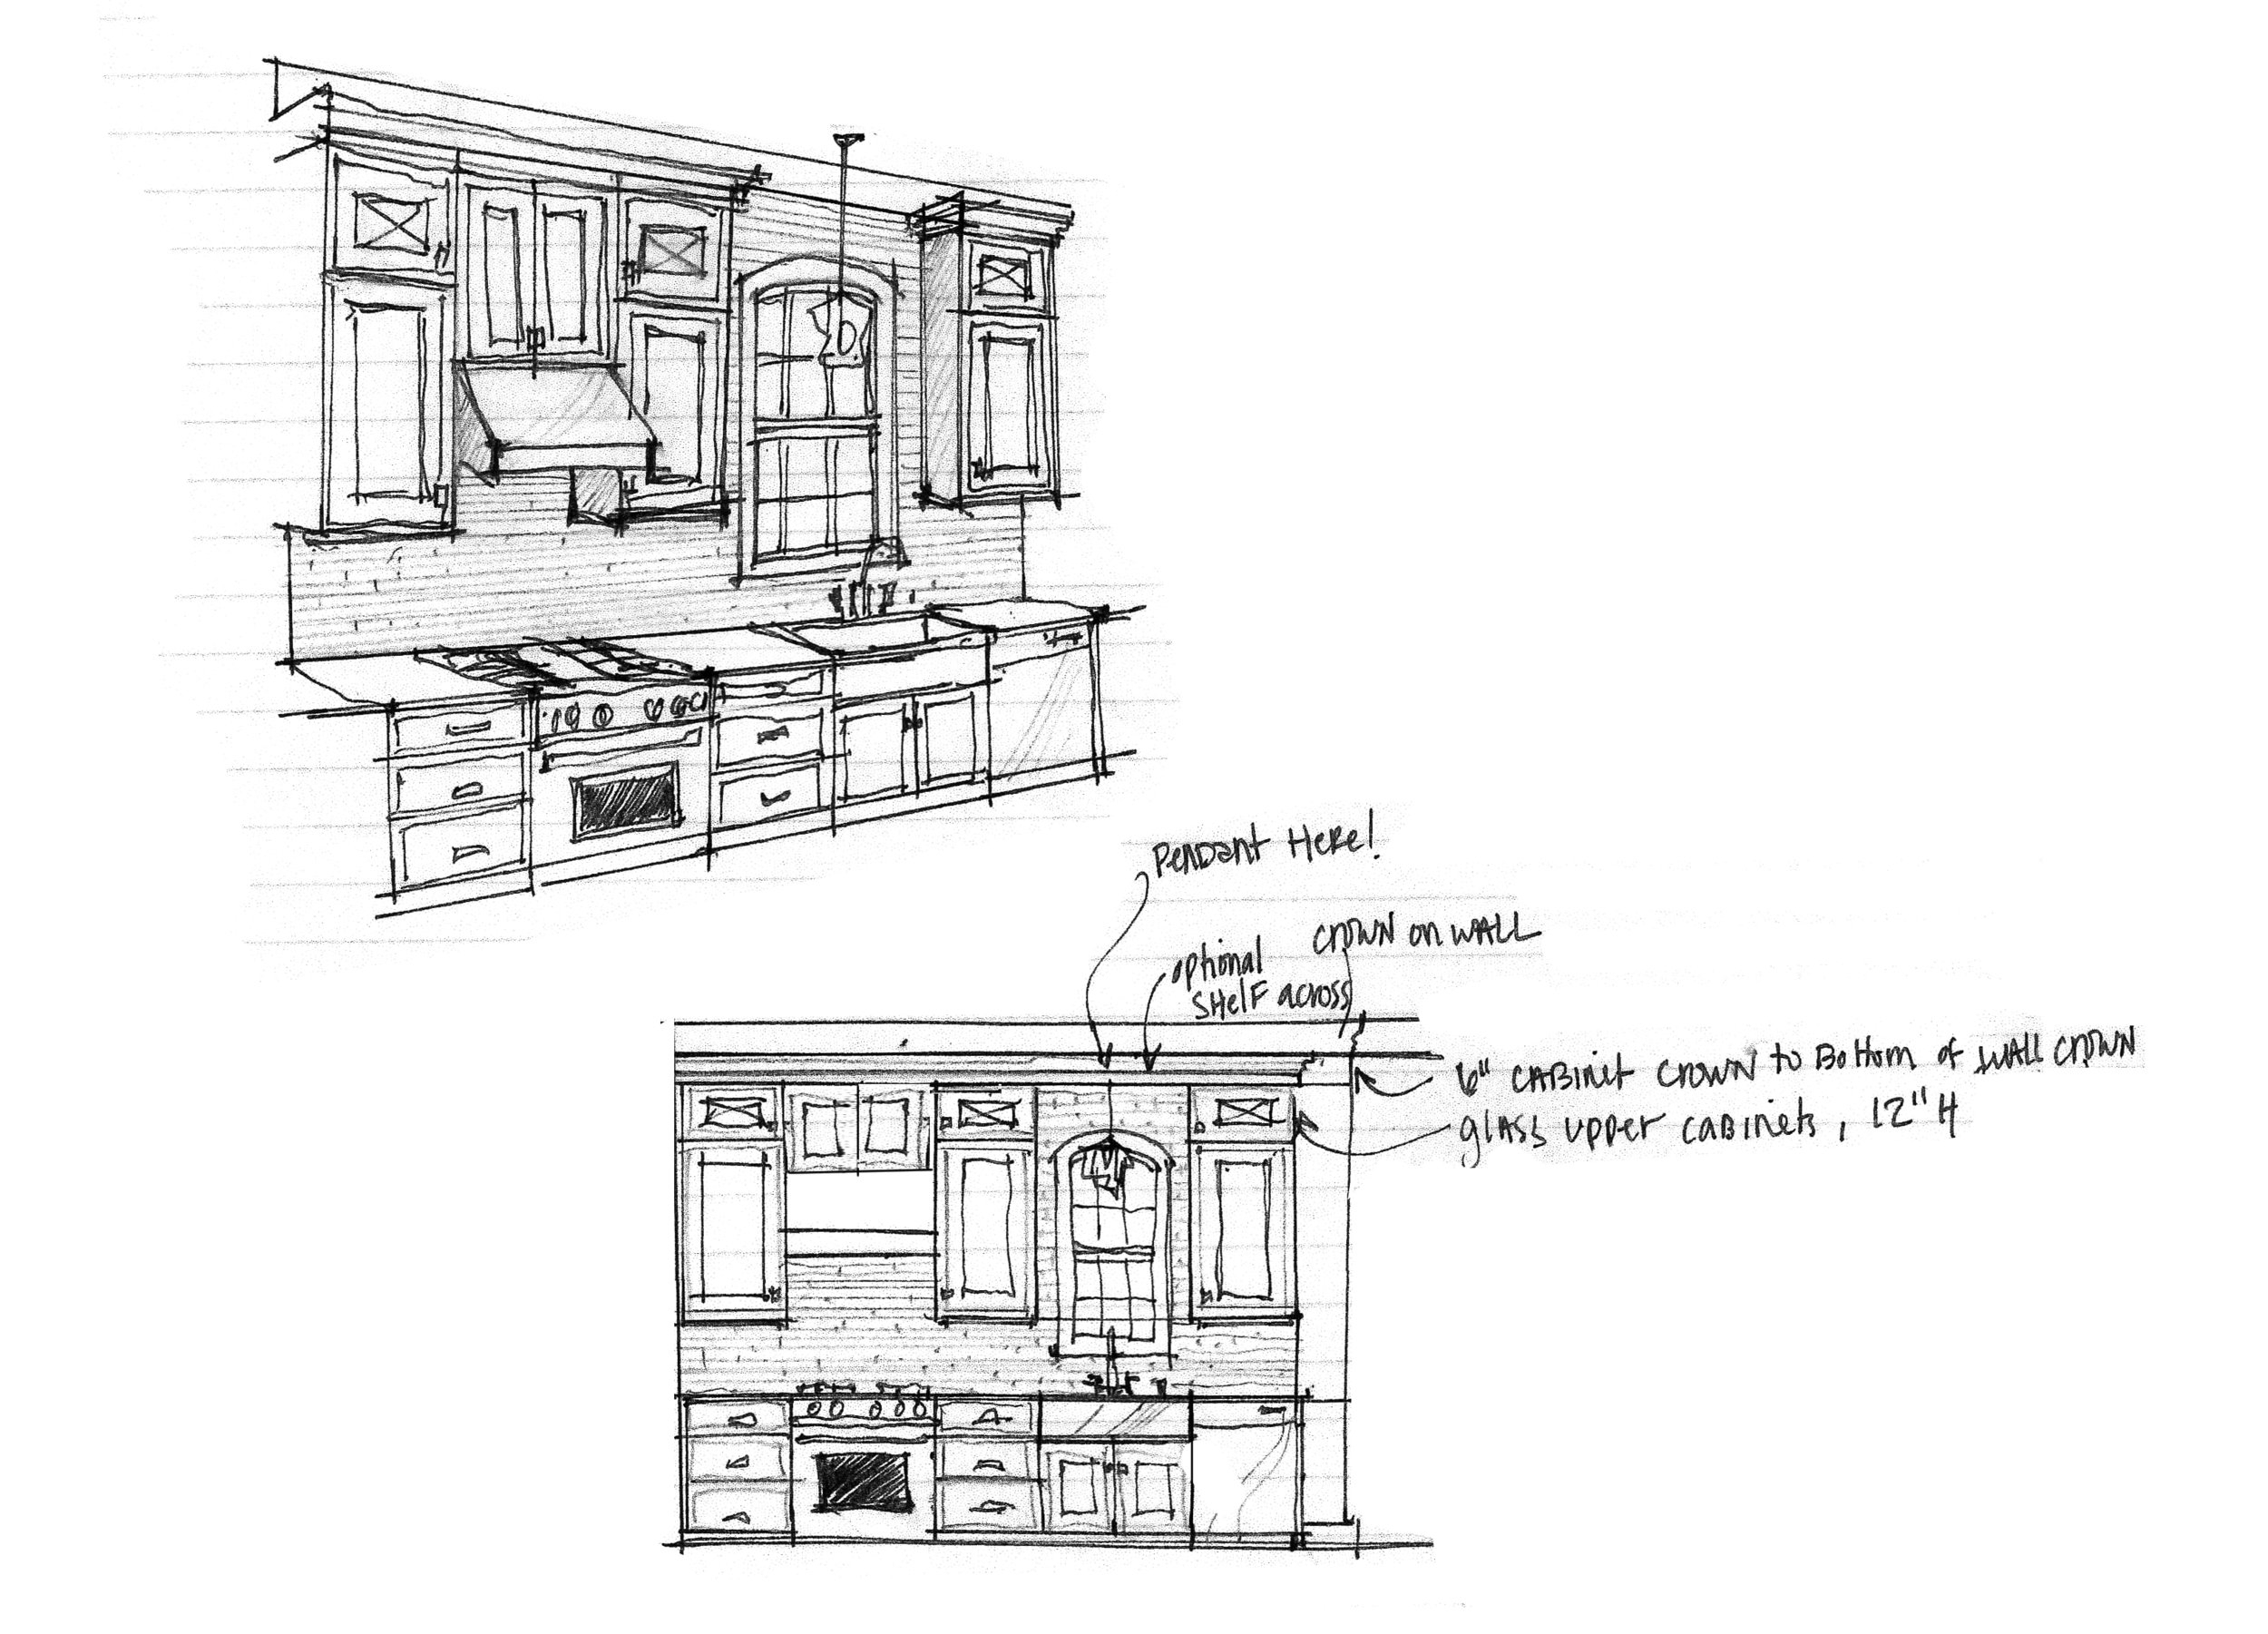 A 3-D sketch and an elevation drawing